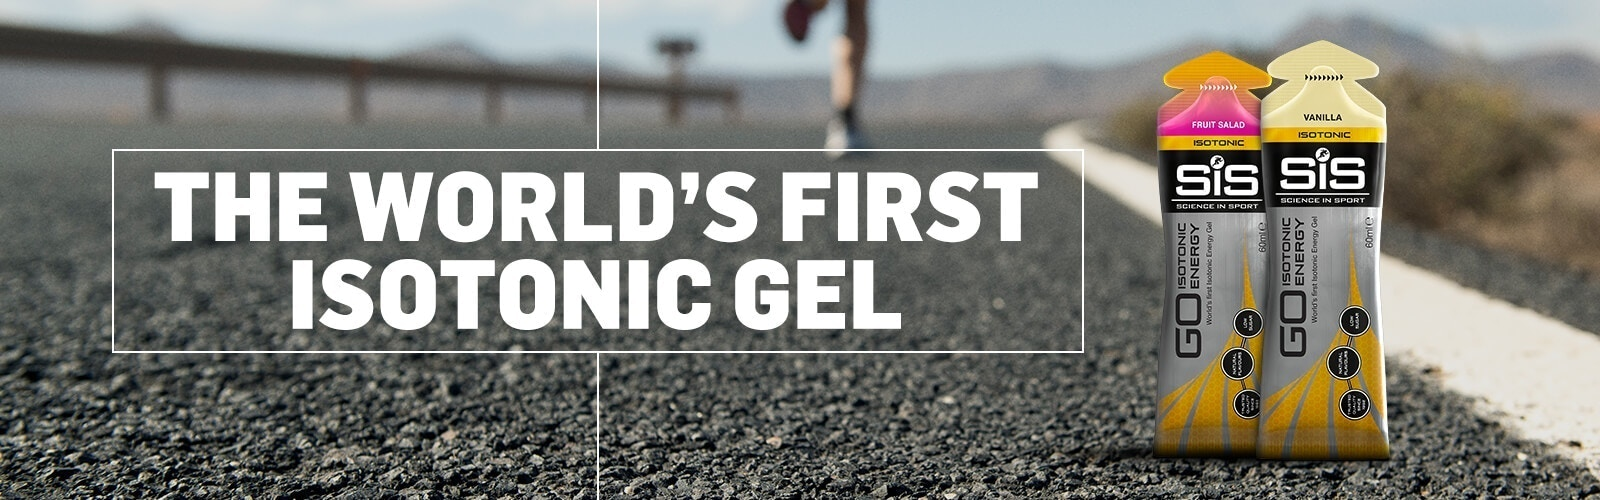 THE WORLD'S FIRST ISOTONIC ENERGY GEL